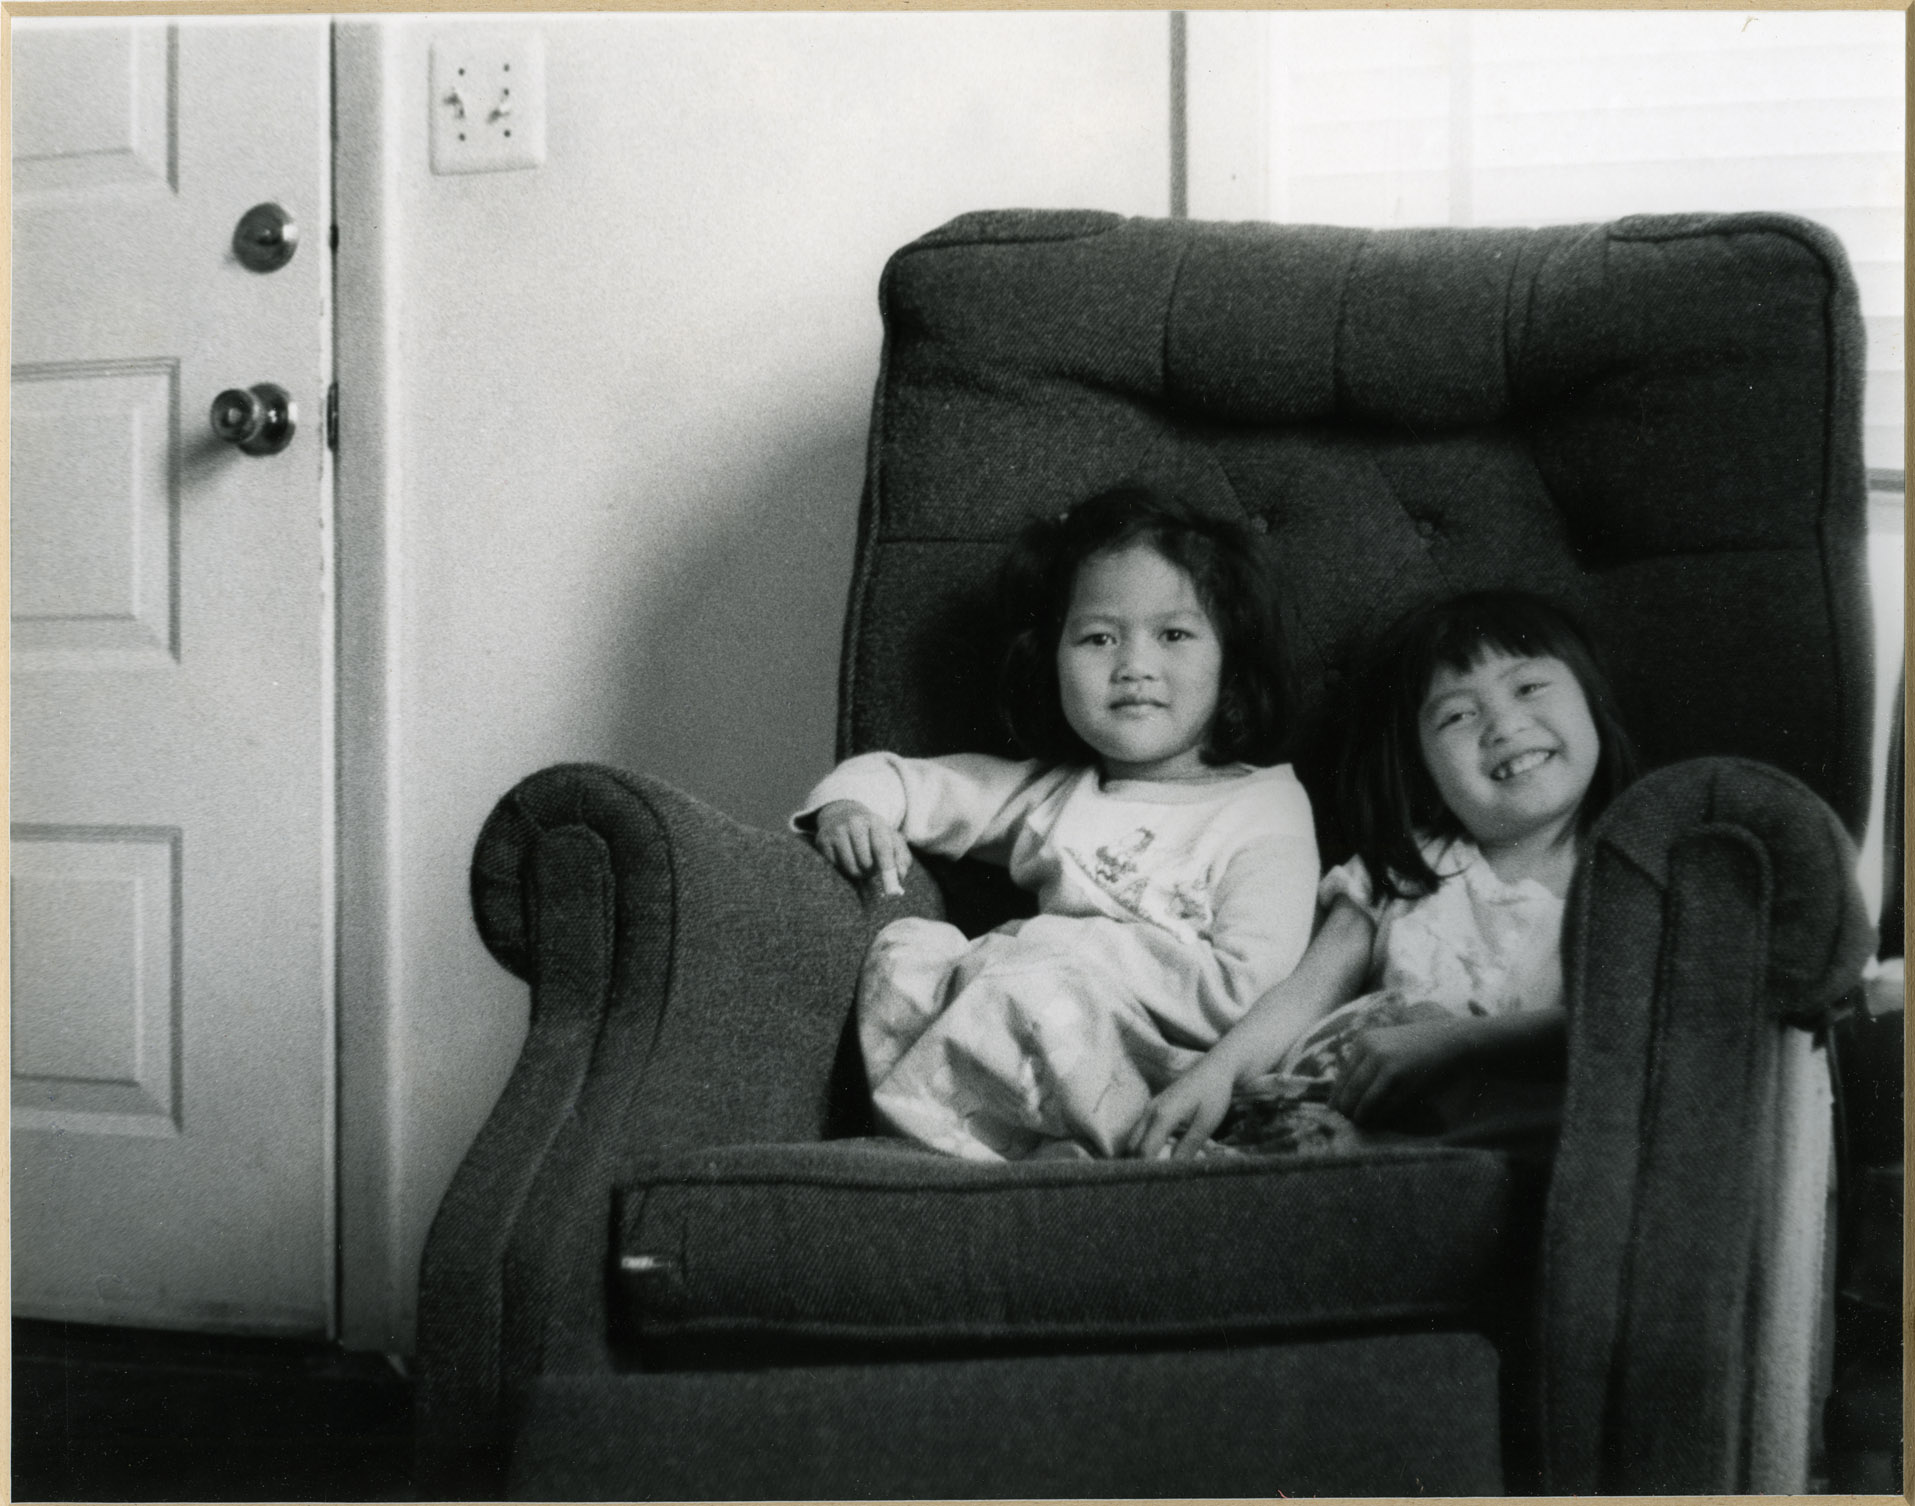 Depiction of At home, photo by Cham Nan Koy, 1982